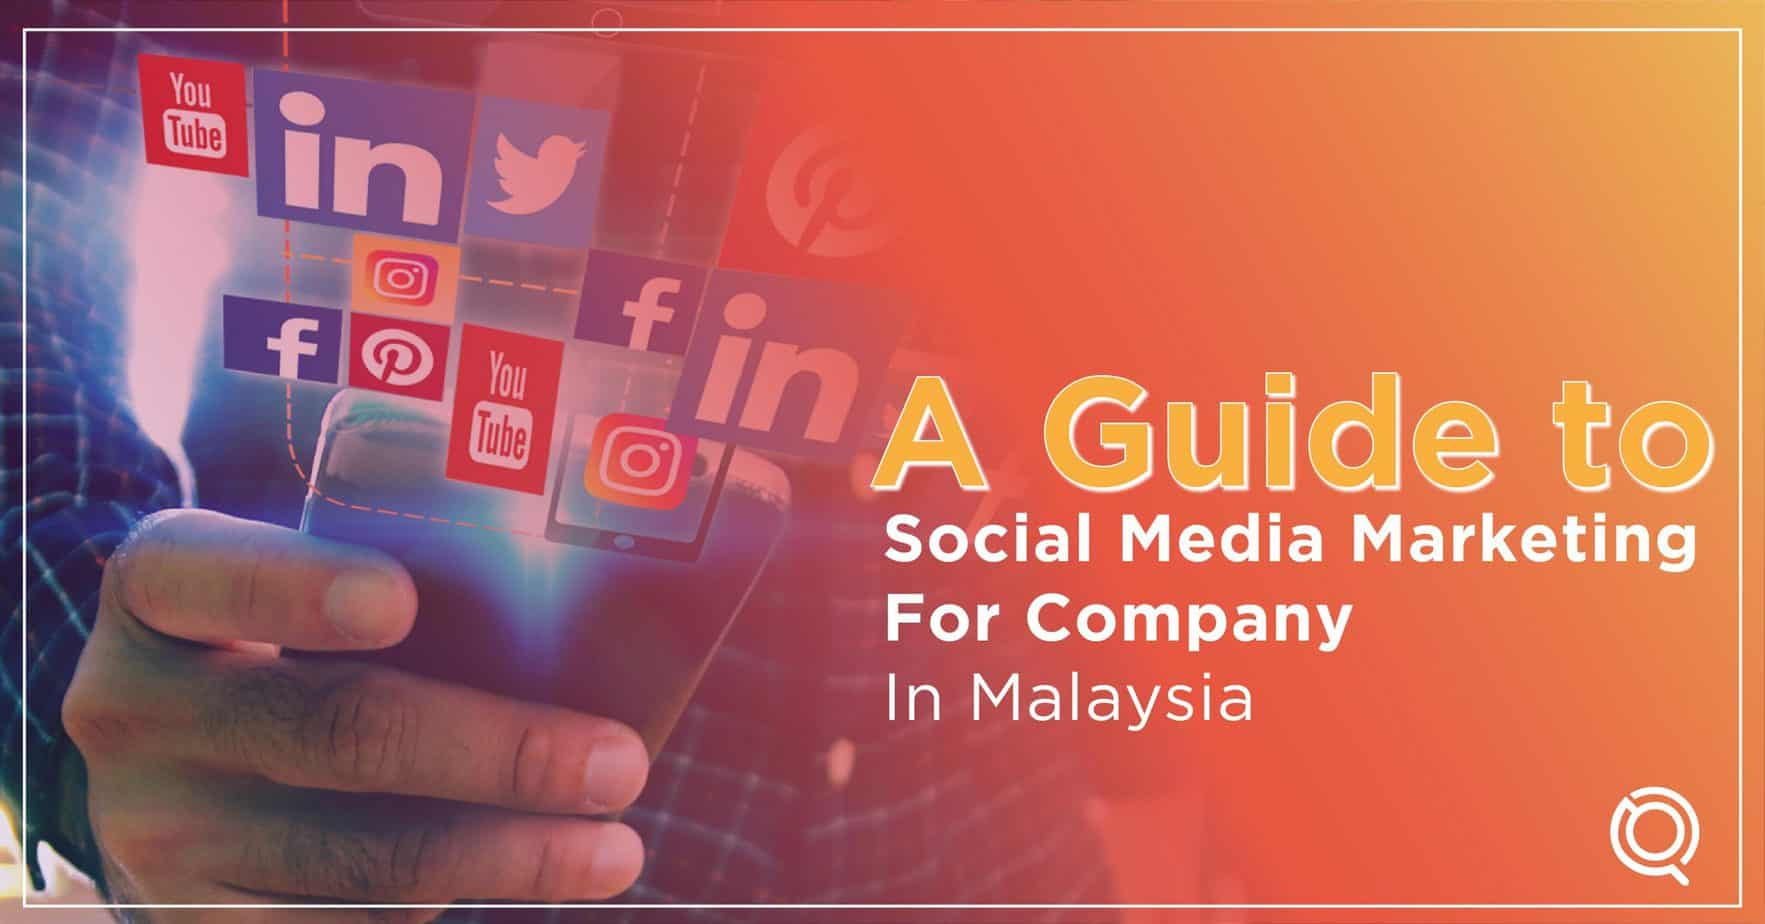 A Guide to Social Media Marketing For Company in Malaysia - One Search Pro Digital Marketing Agency Malaysia